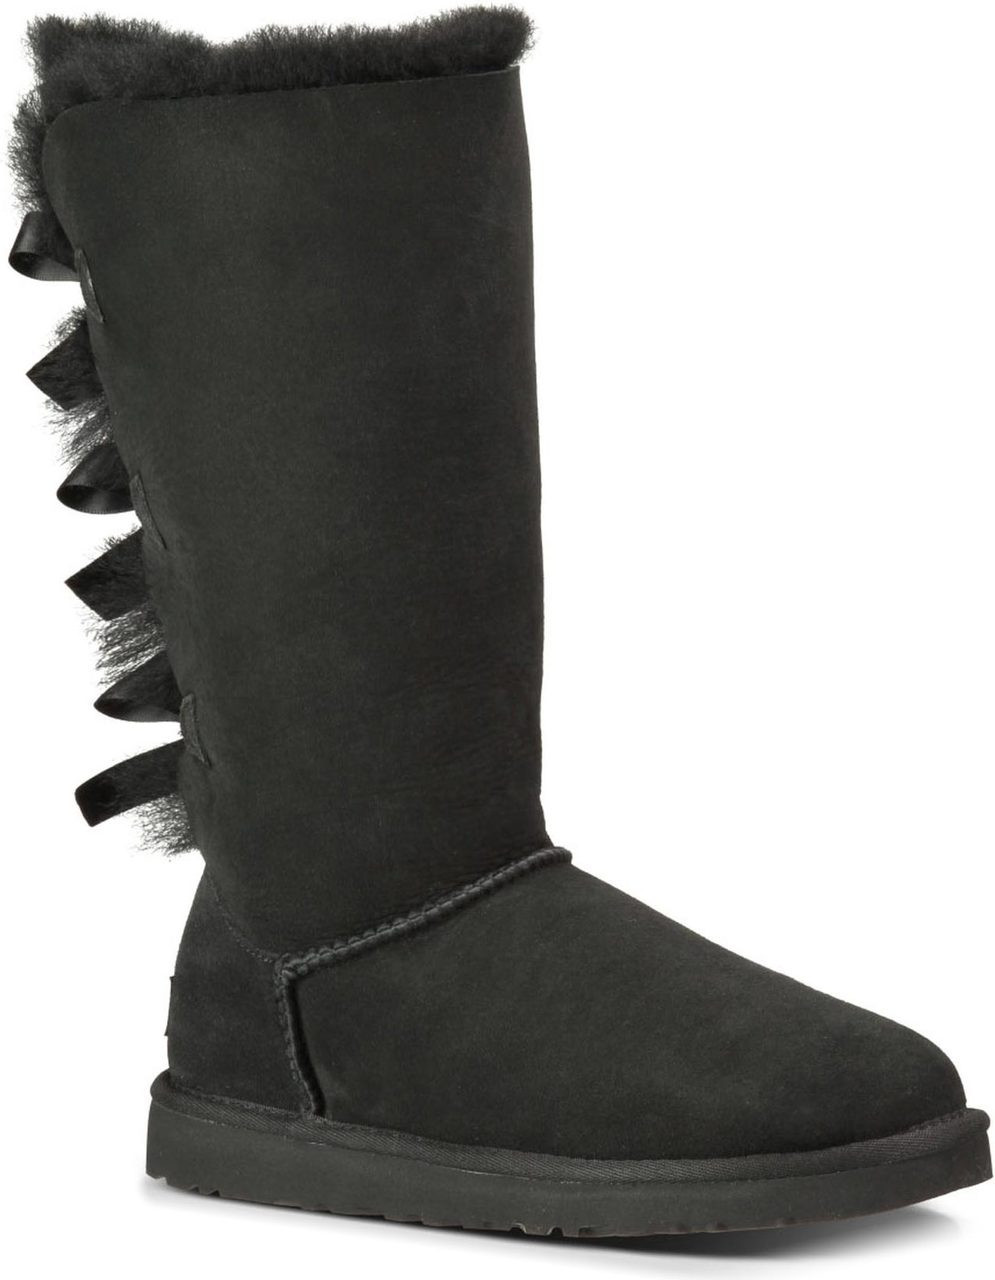 ... UGG Australia Women's Bailey Bow Tall. Black